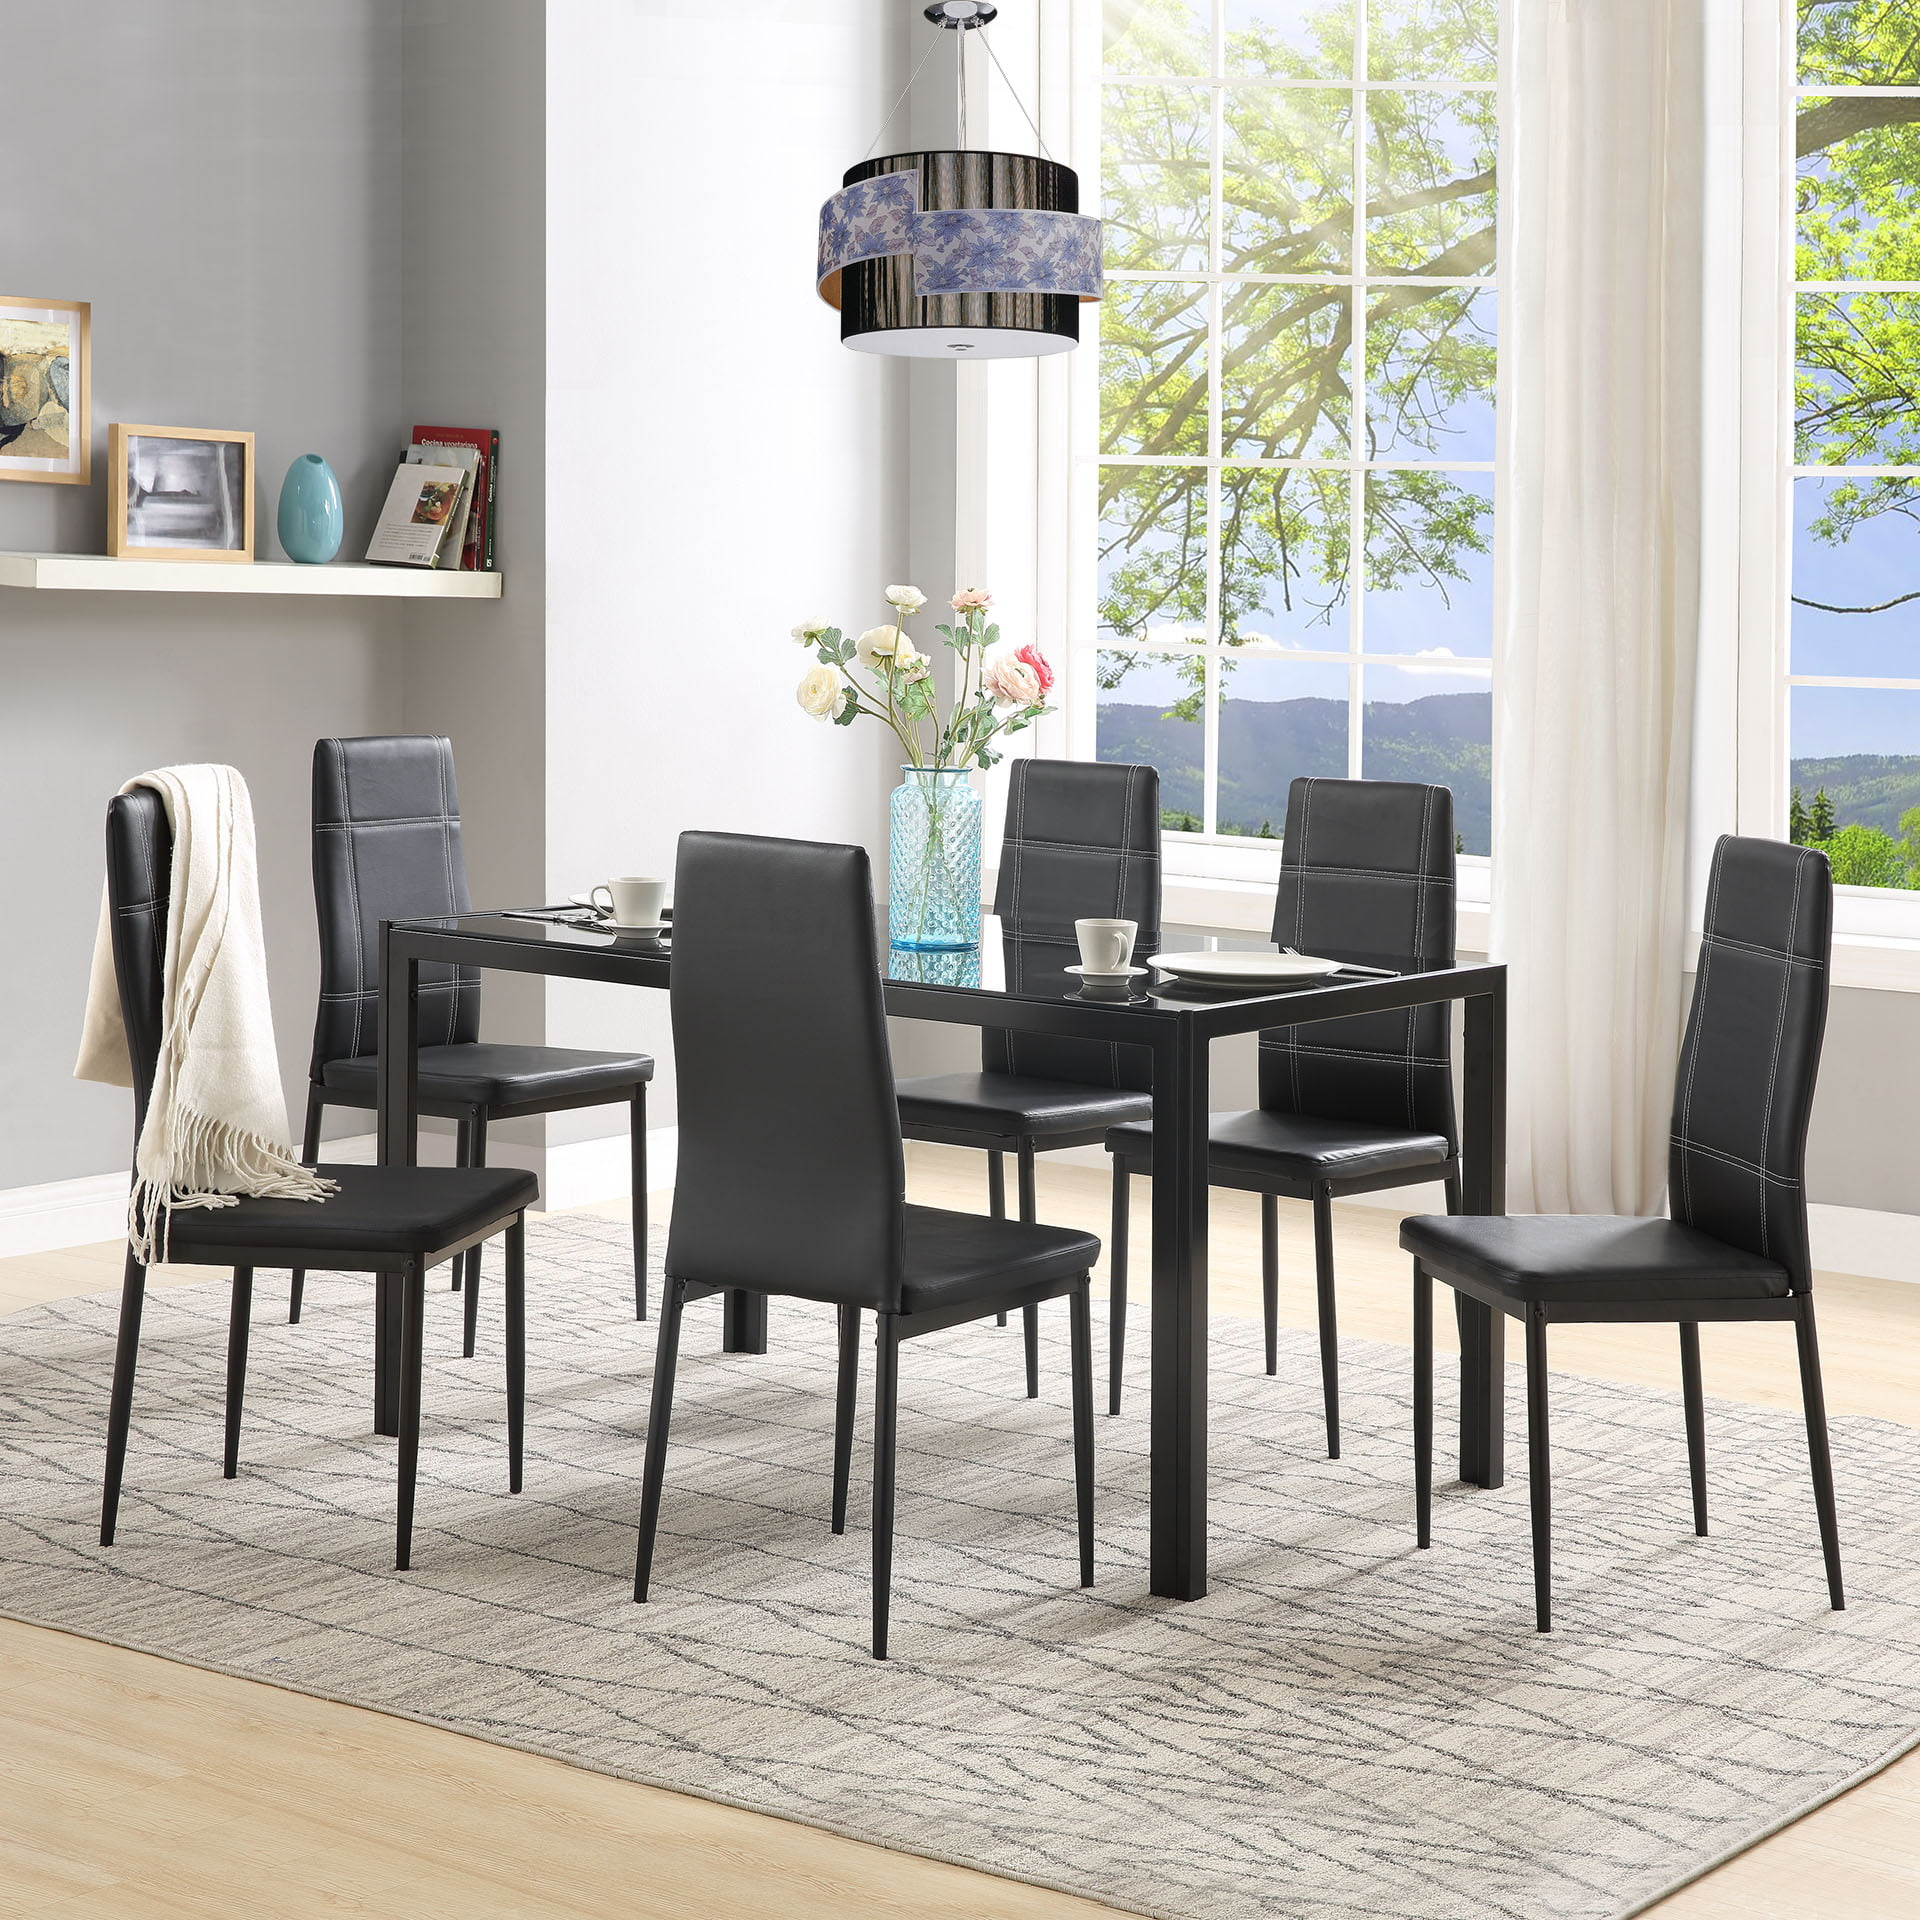 Clearance 7 Piece Kitchen Dining Table Chair Set Dining Room Table Set With Glass Tabletop Faux Leather Chair Square Dining Table Set For 6 Dinette Set For Kitchen Dining Room Small